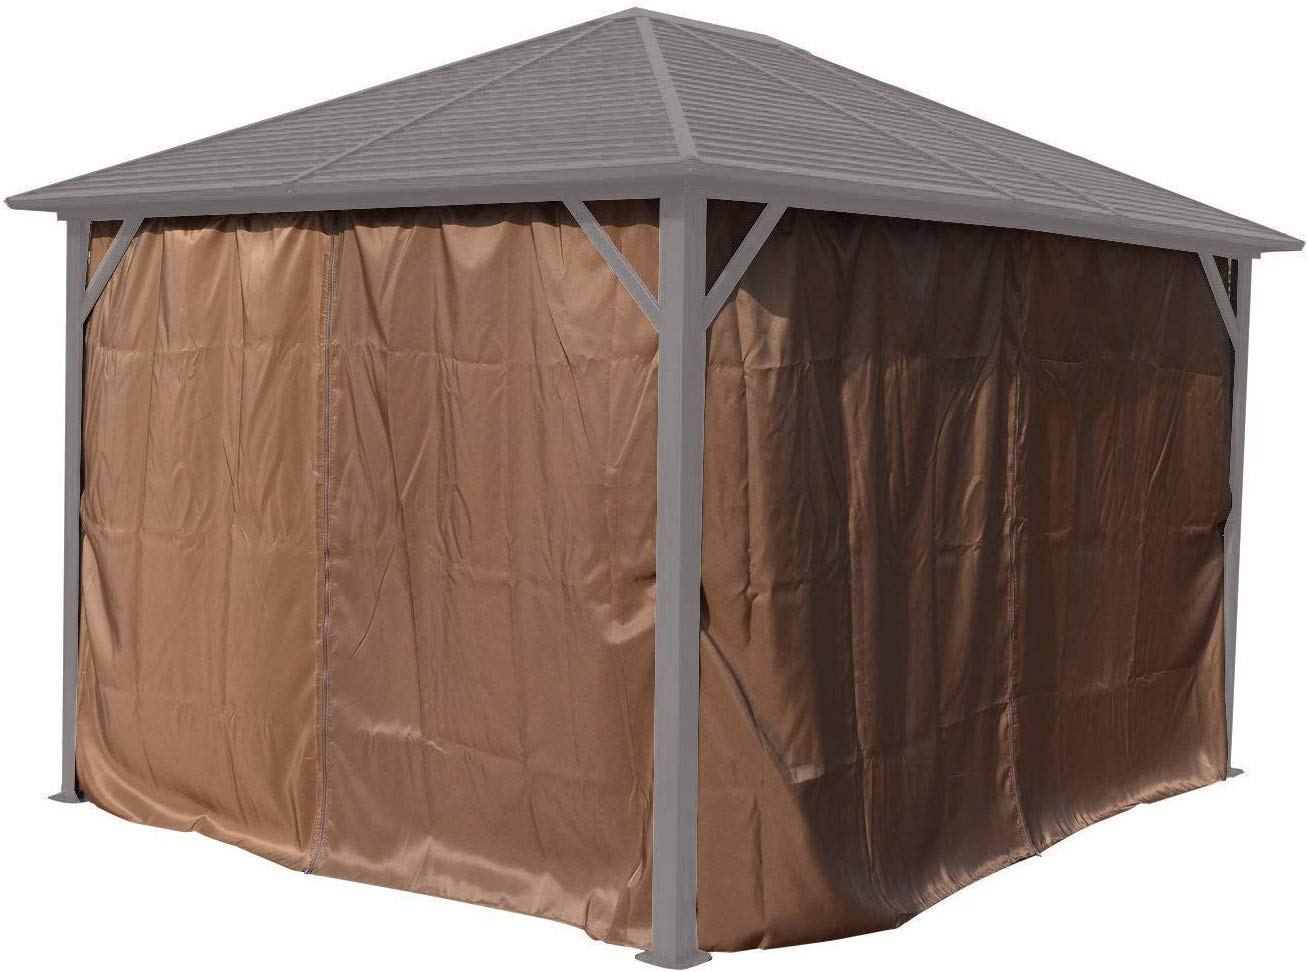 Kozyard Gazebo Privacy Sidewall